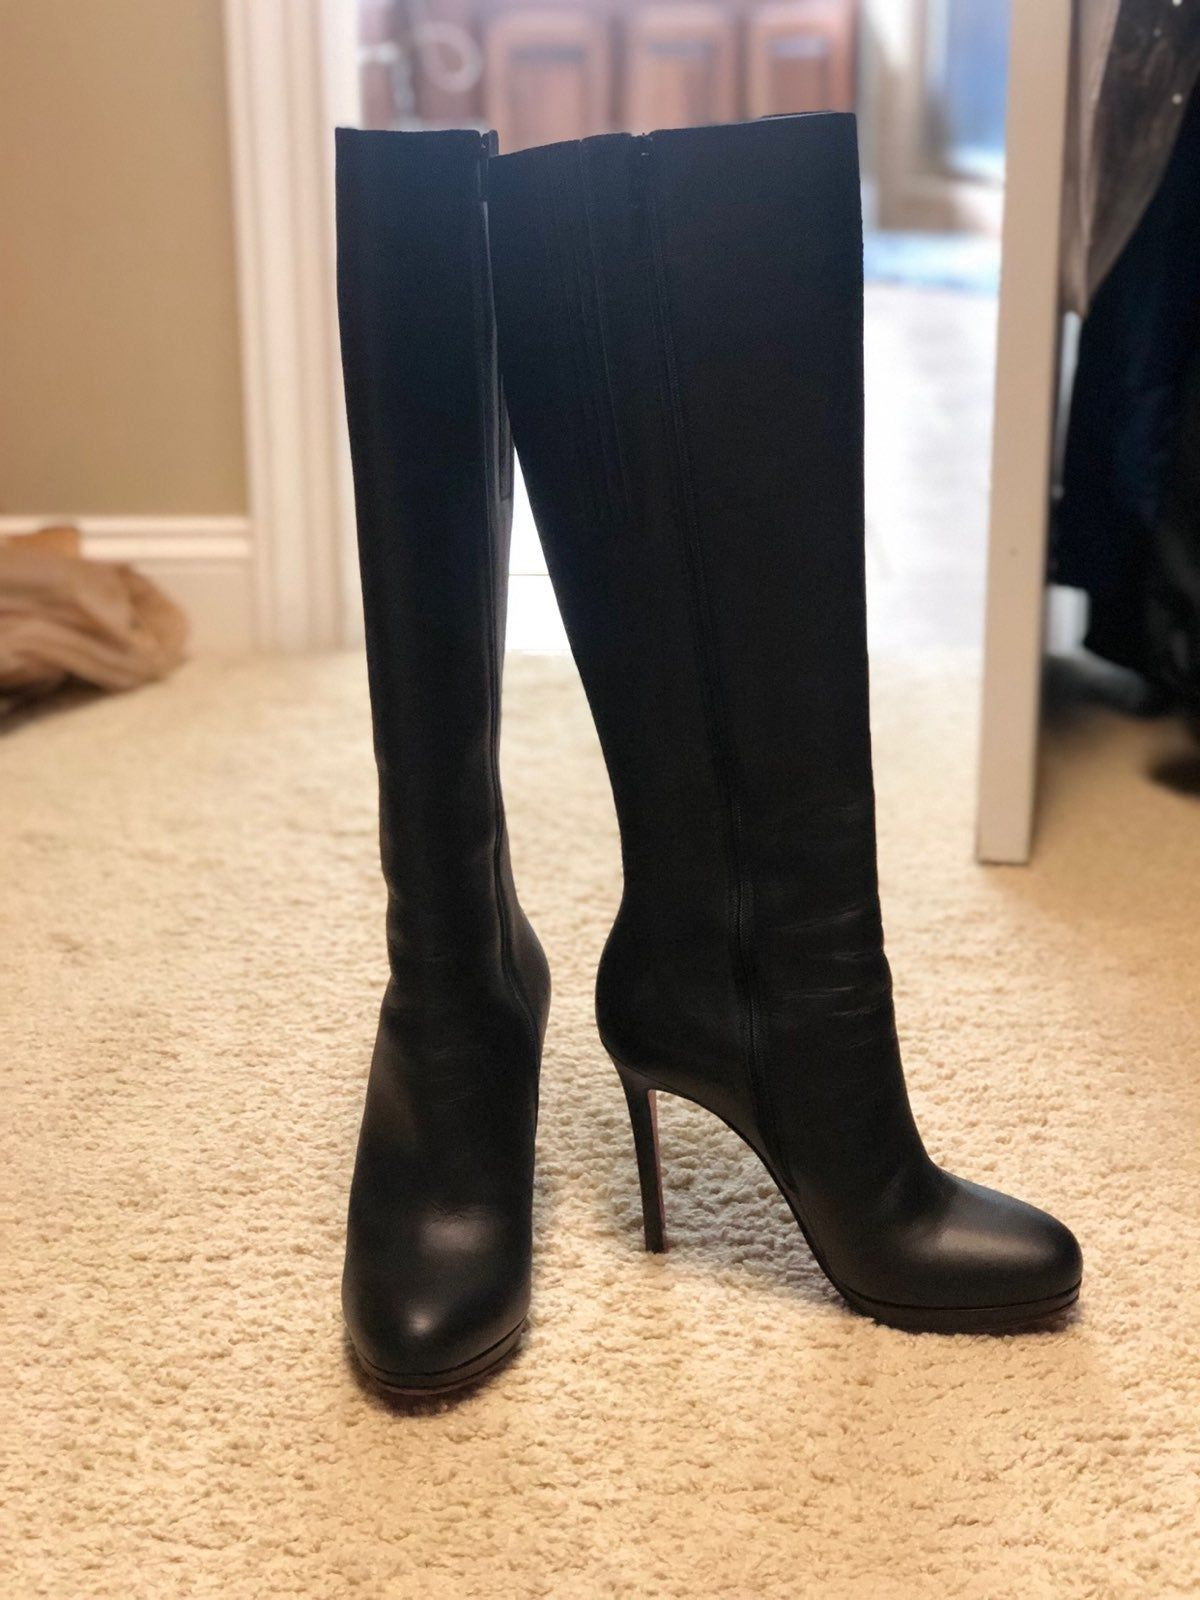 Authentic Christian Louboutin boots! Pristine condition